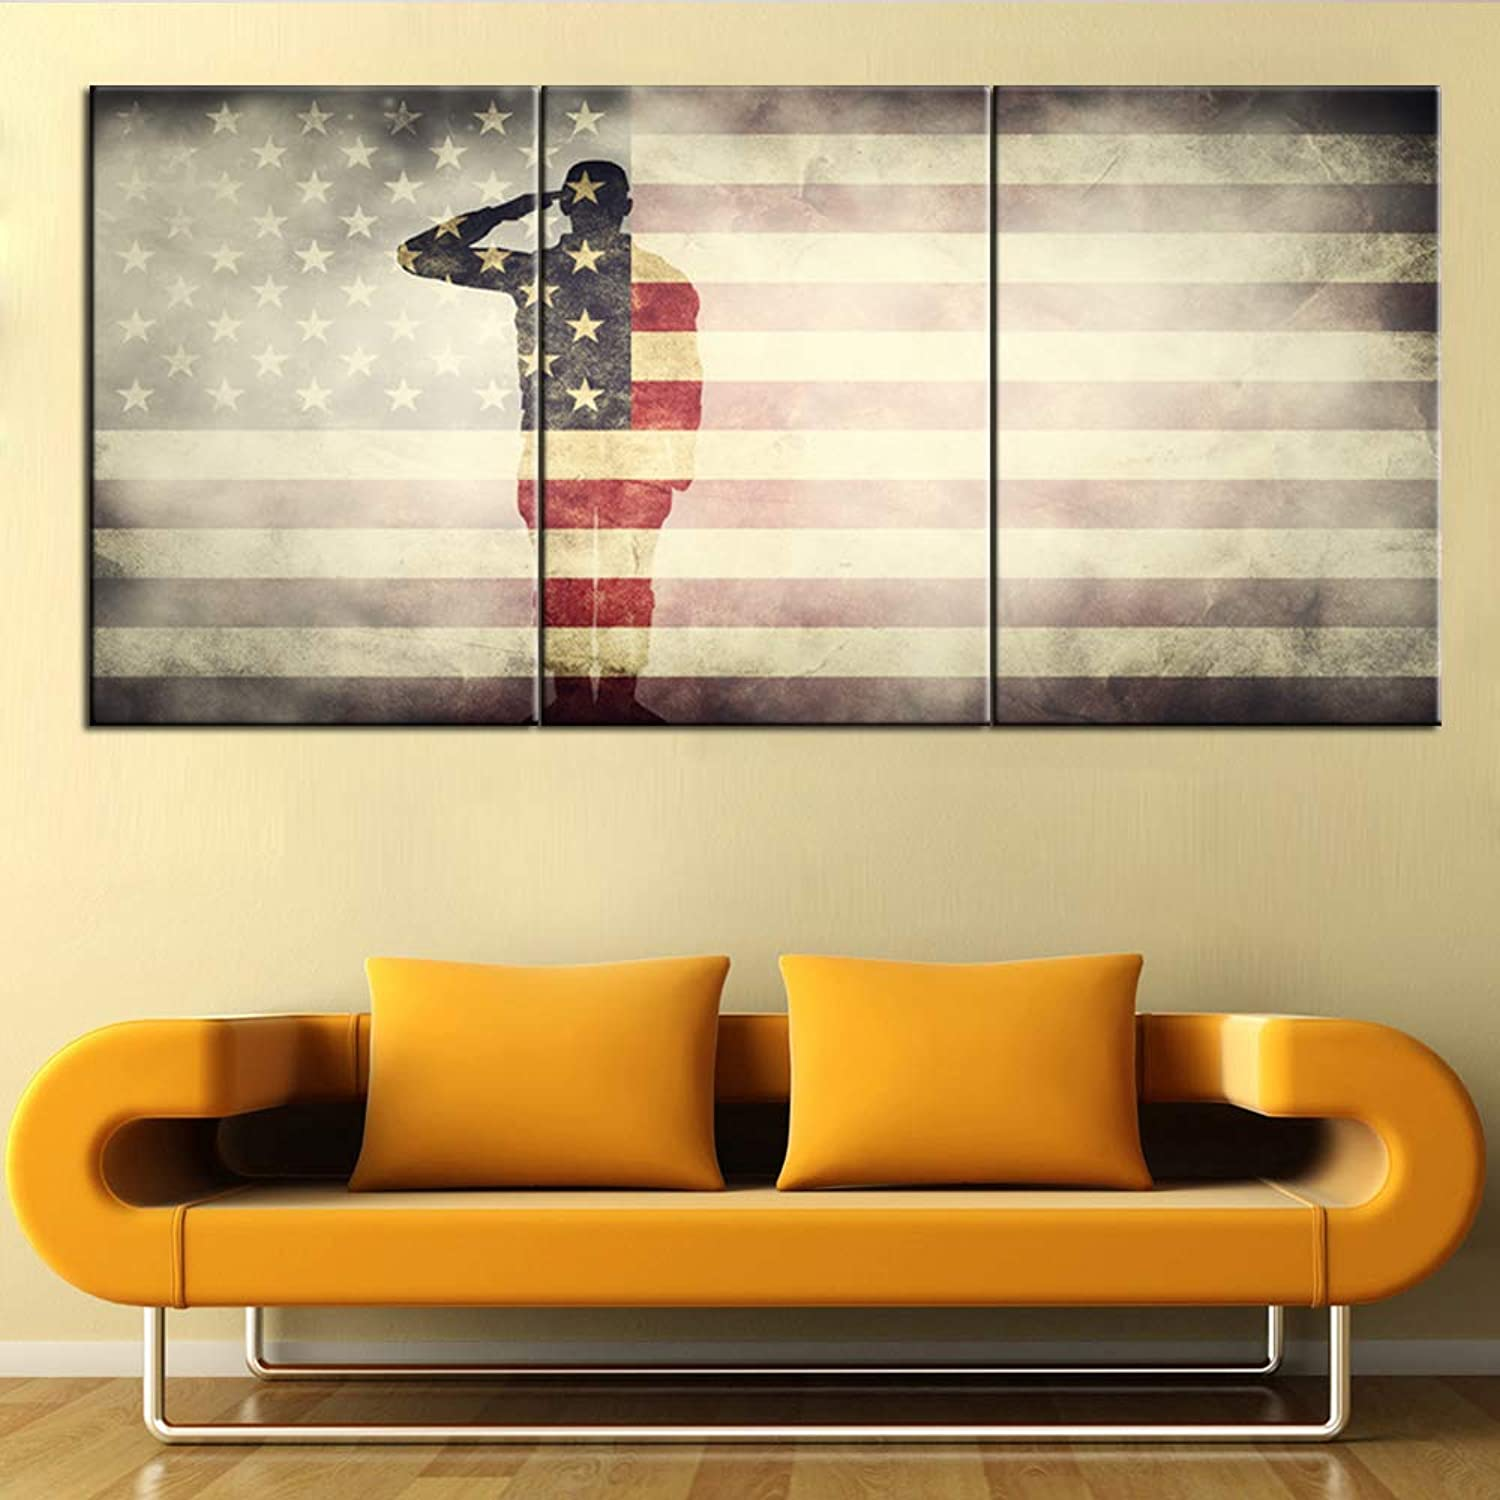 Native American Art Wall Decor USA Flag Paintings 3 Panel Stars Stripes Retro Artwork for Living Room Patriotic Pictures on Canvas House Decoration Framed Gallery-Wrapped Ready to Hang(42''Wx20''H)